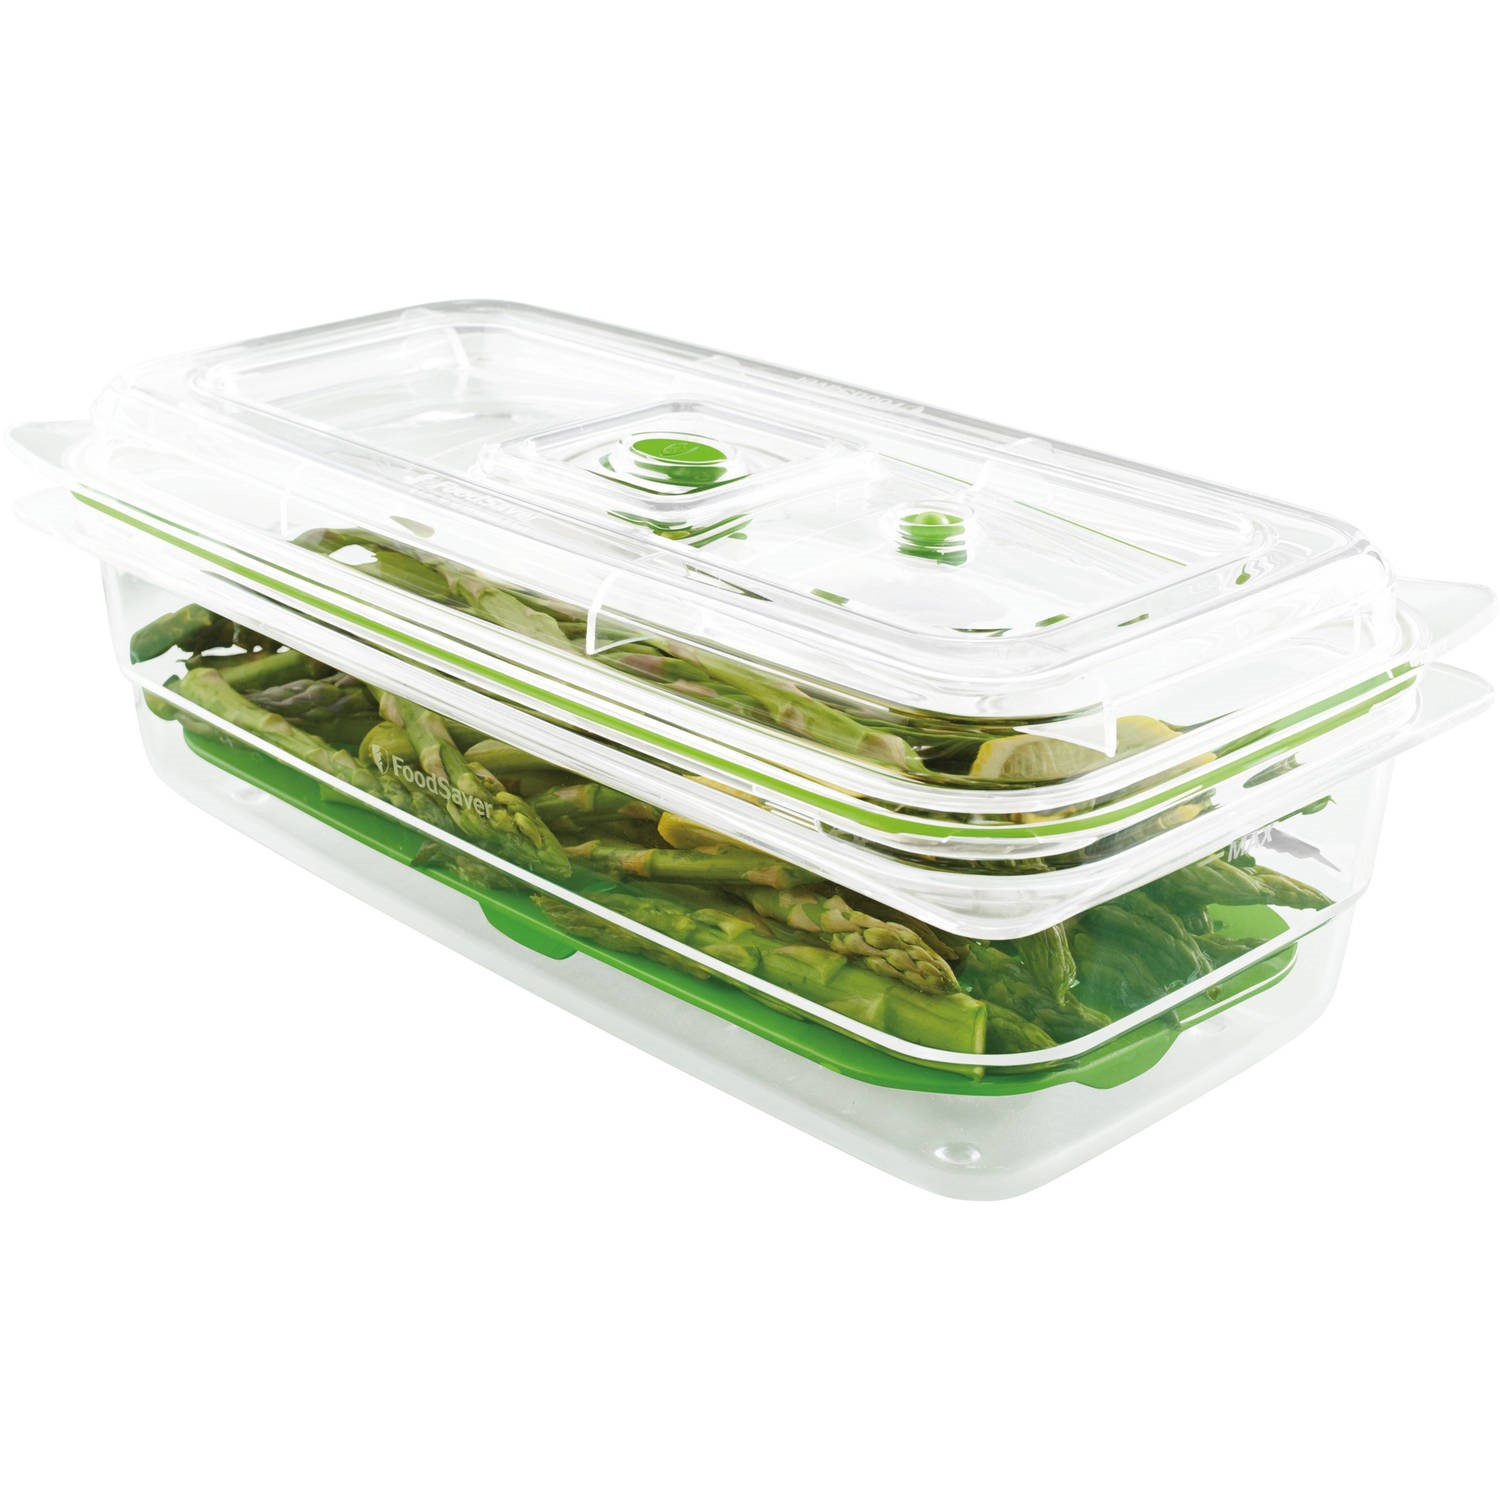 FoodSaver Fresh Containers, 10-Cup Single Container, FAC10-000